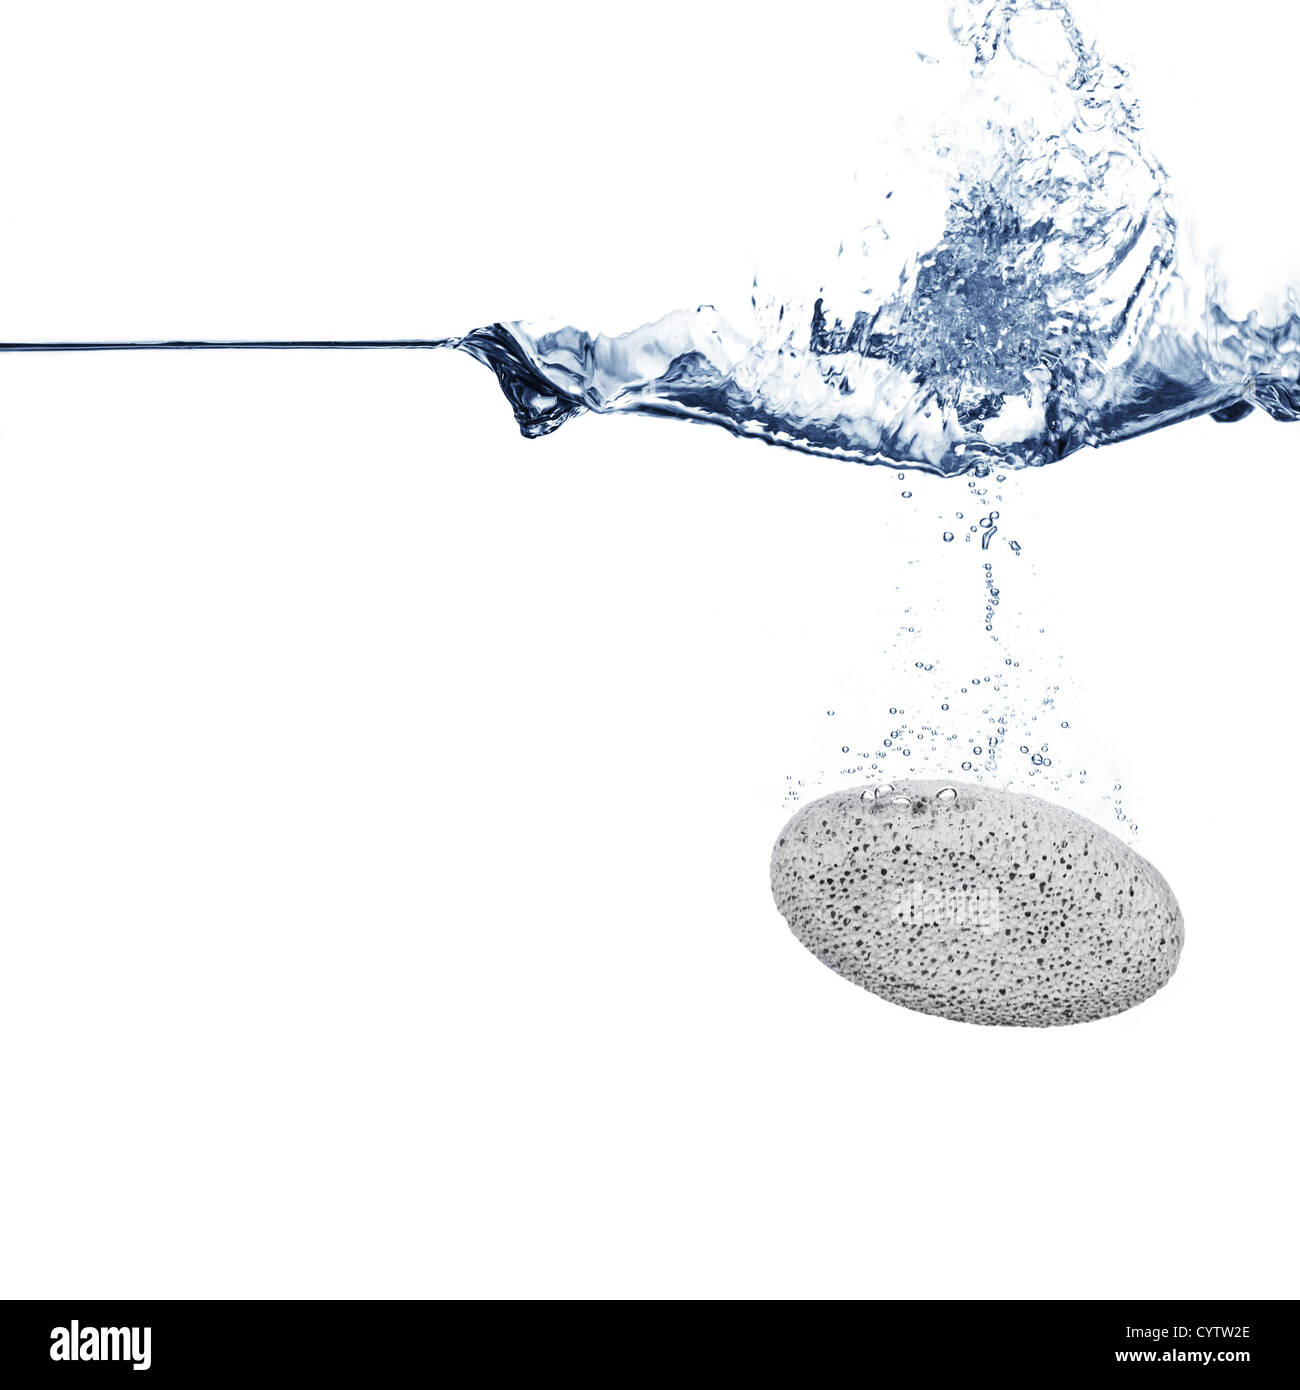 Pumice stone falling into crisp clear water. - Stock Image